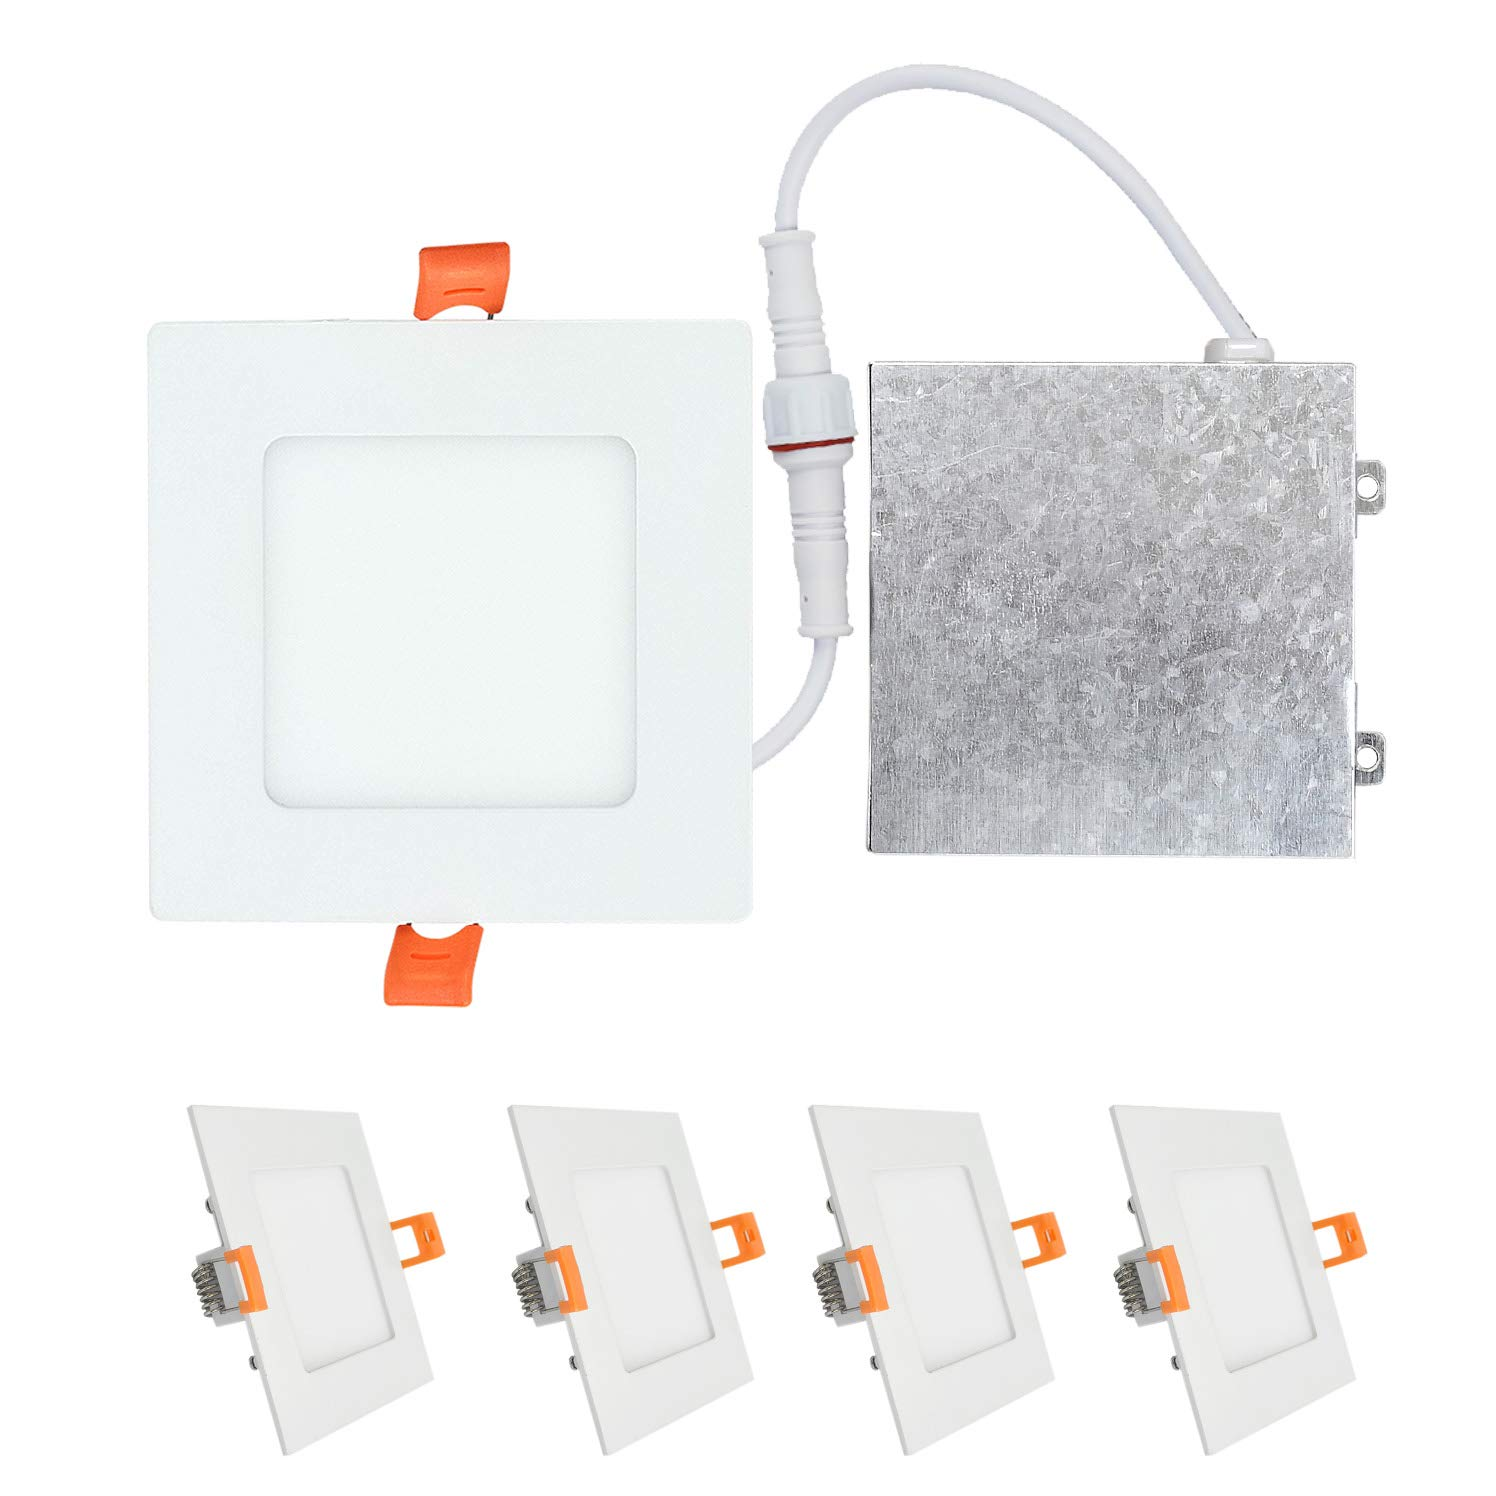 No Can Needed ETL /& Energy Star Listed Dimmable 3000K Warm Light 630 Lm OSTWIN 4 inch 9W IC Rated LED Recessed Low Profile Slim Square Panel Light with Junction Box 45 Watt Repl.